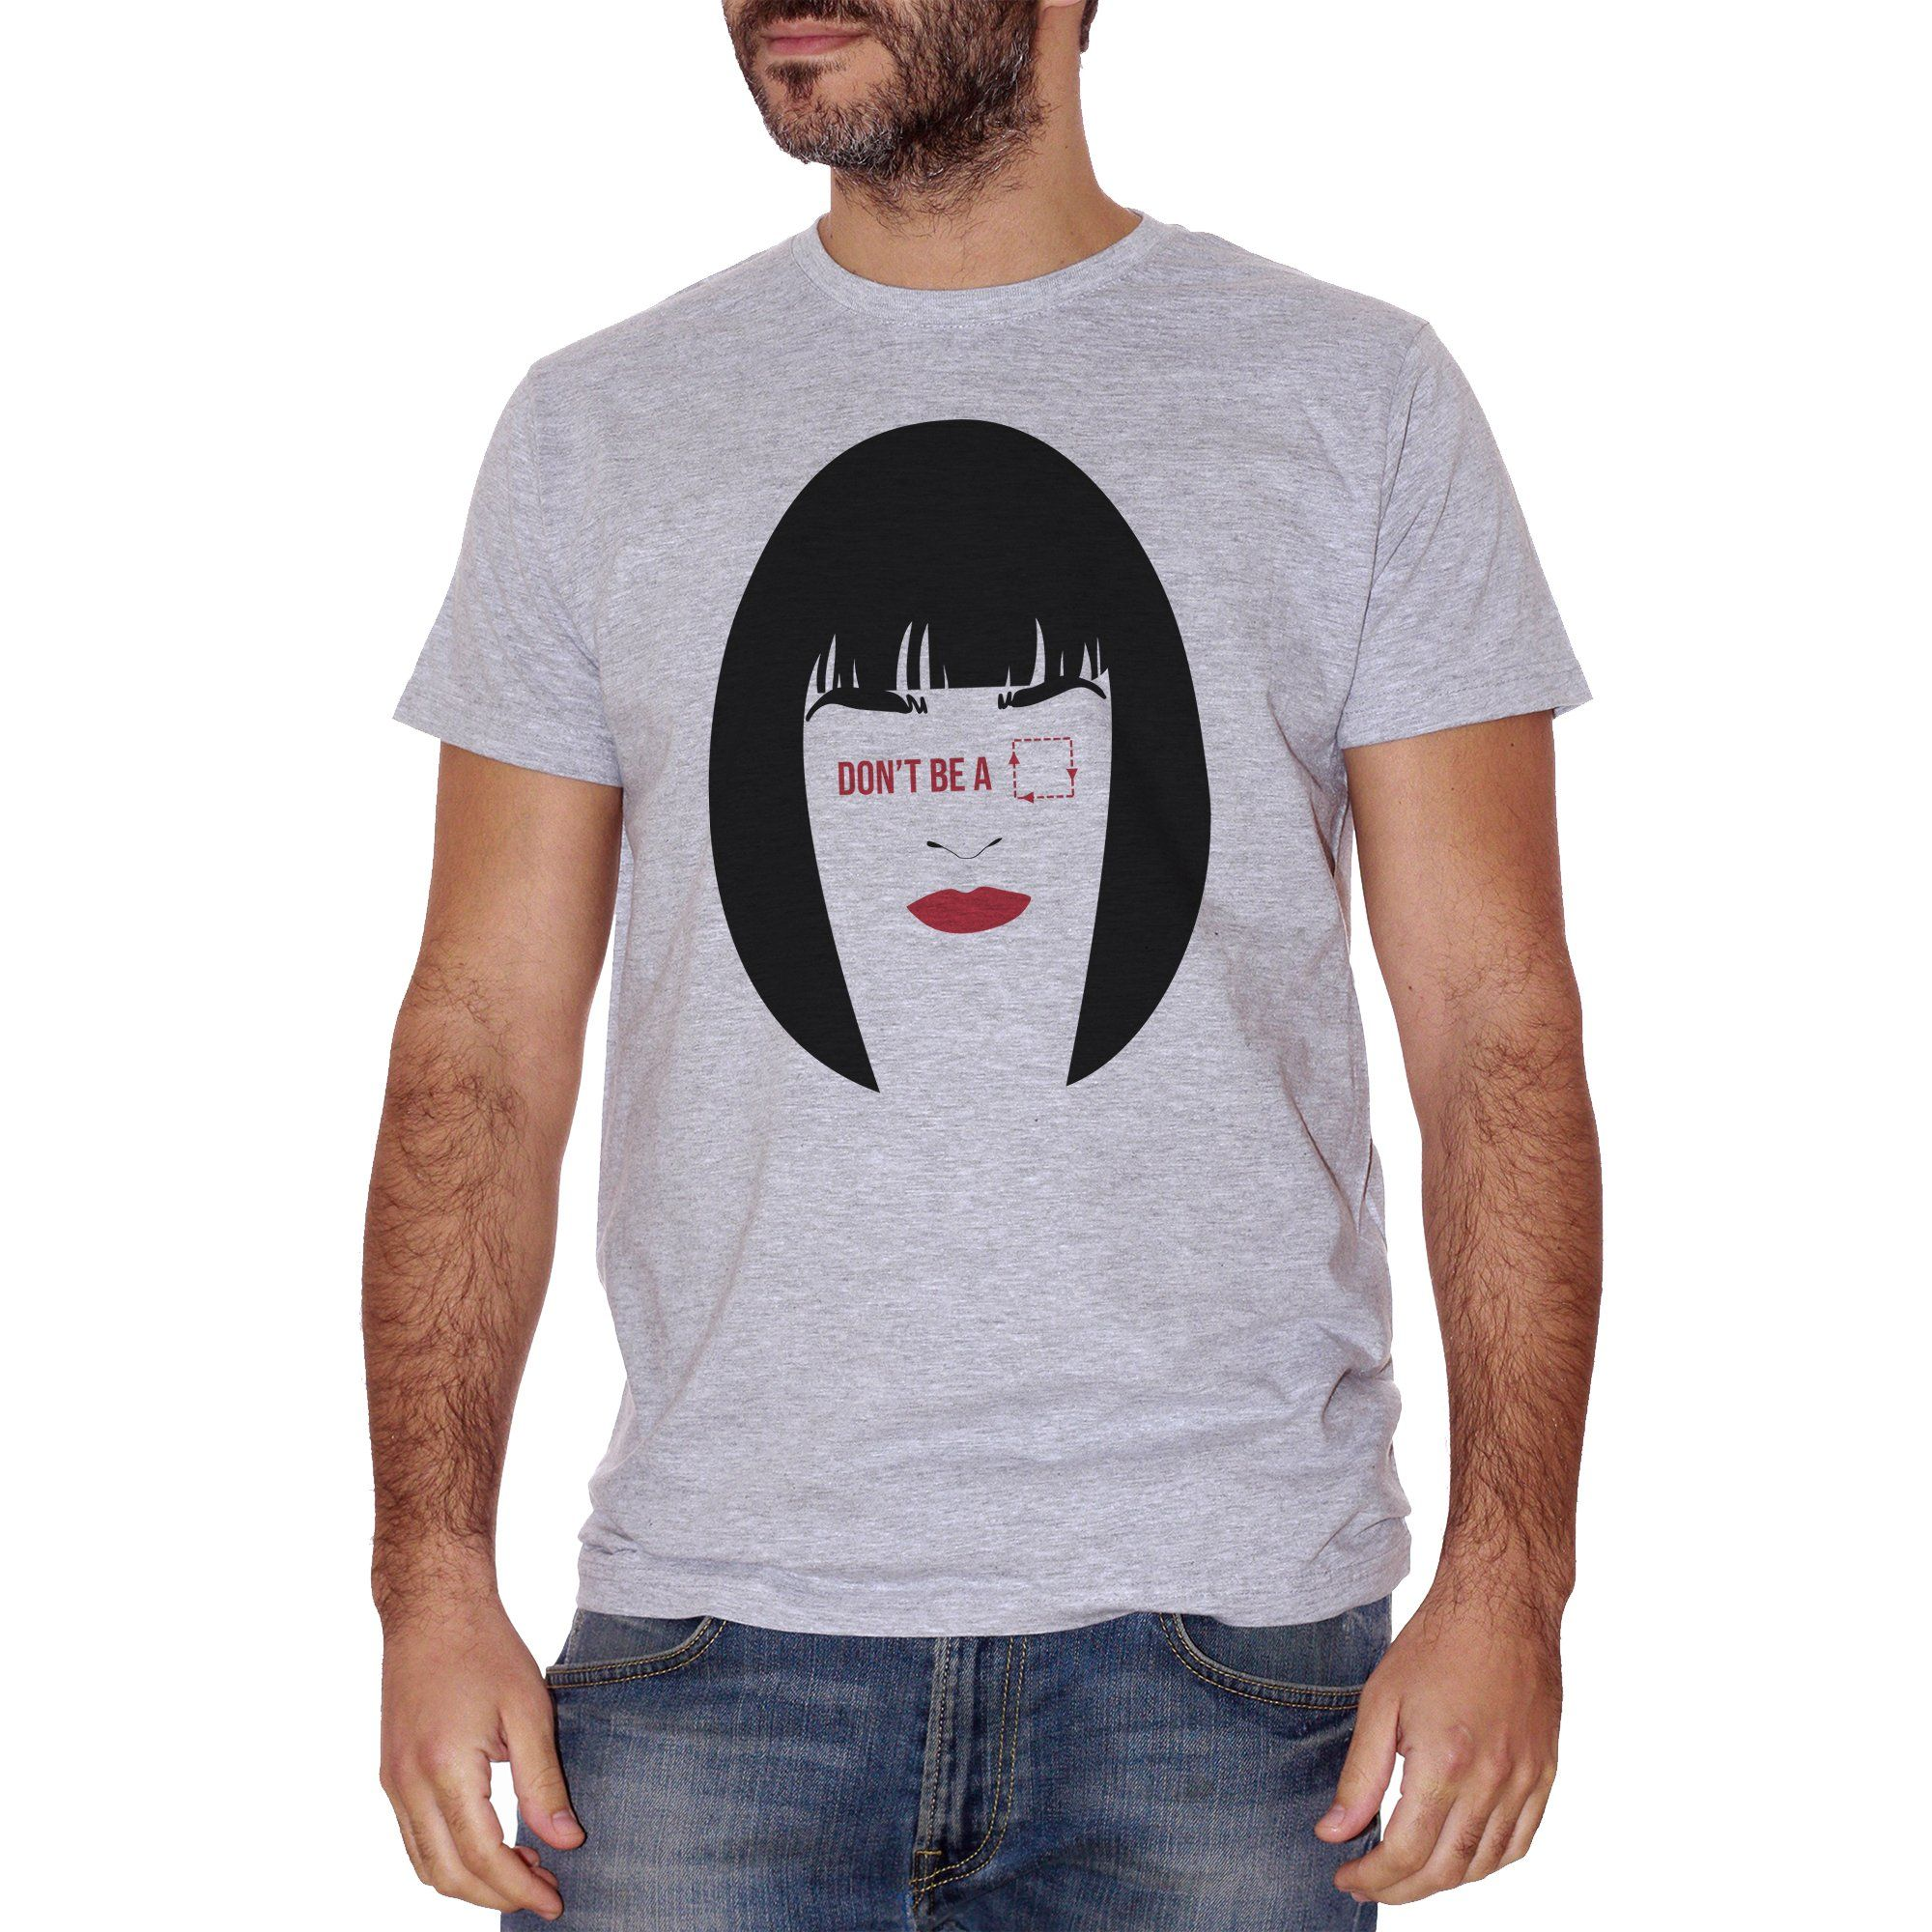 T-Shirt Pulp Fiction Quotes Mia Wallace - FILM